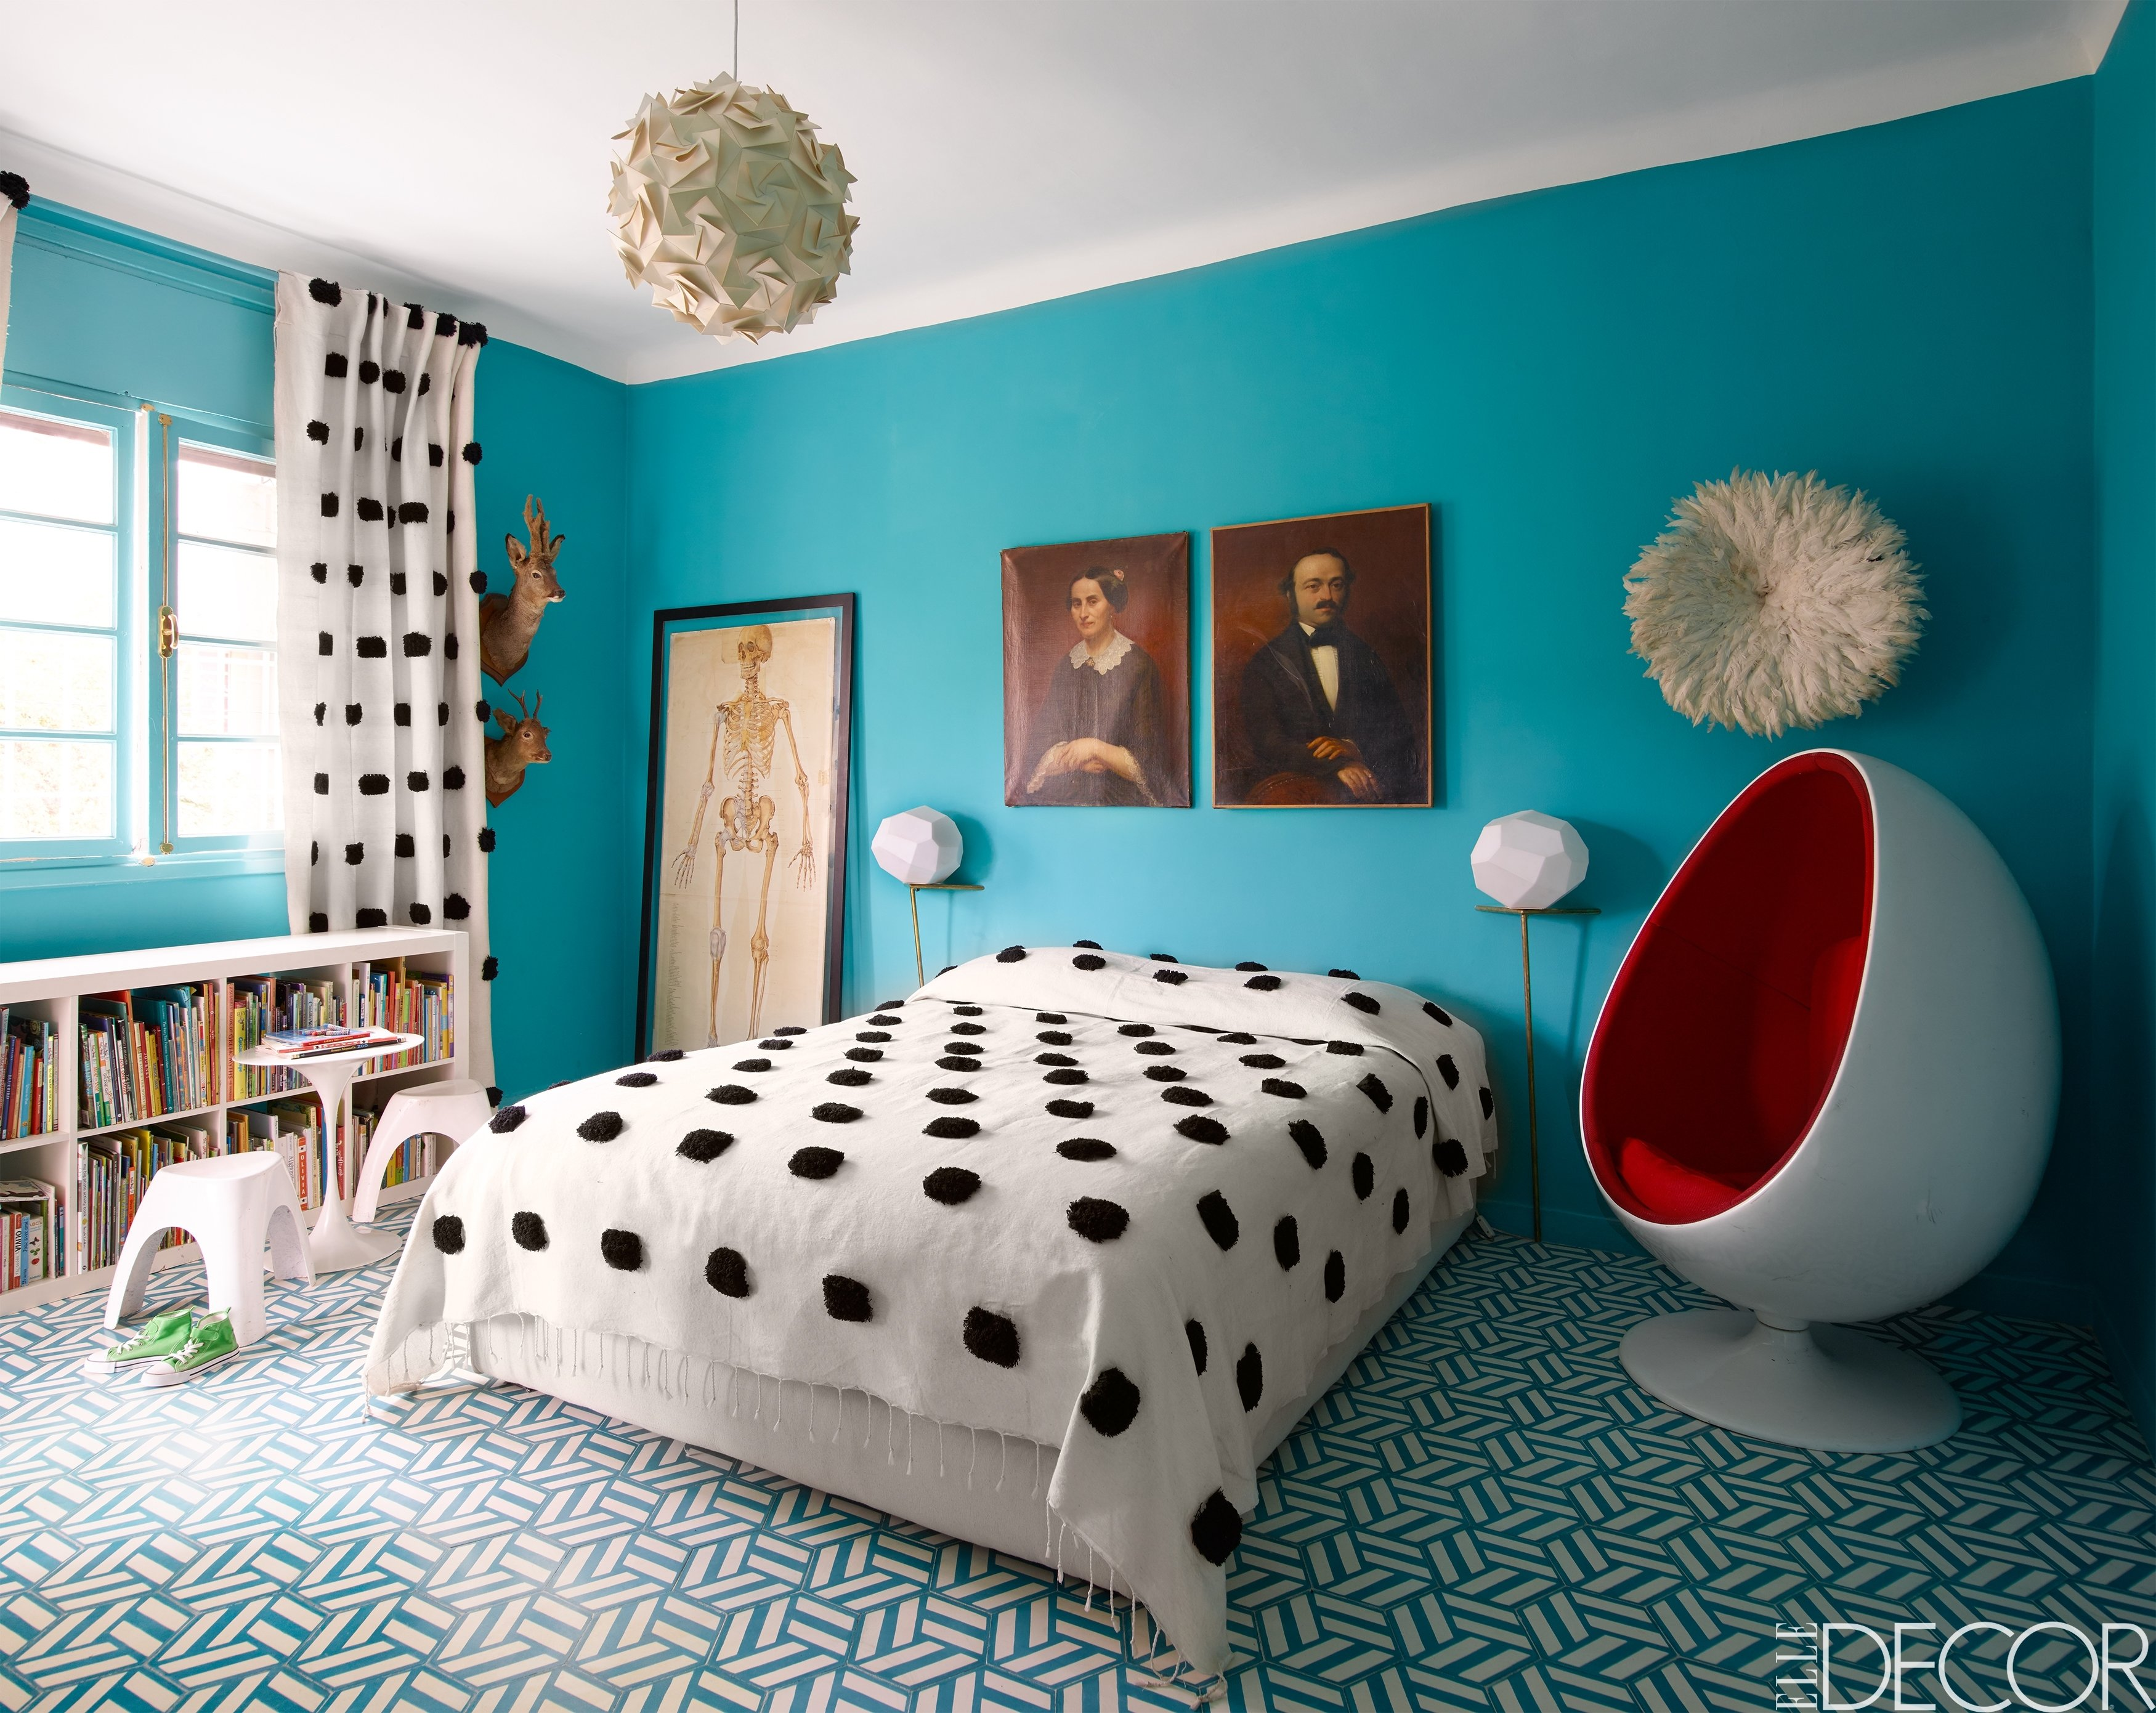 10 Great Room Decorating Ideas For Girls 10 girls bedroom decorating ideas creative girls room decor tips 2020